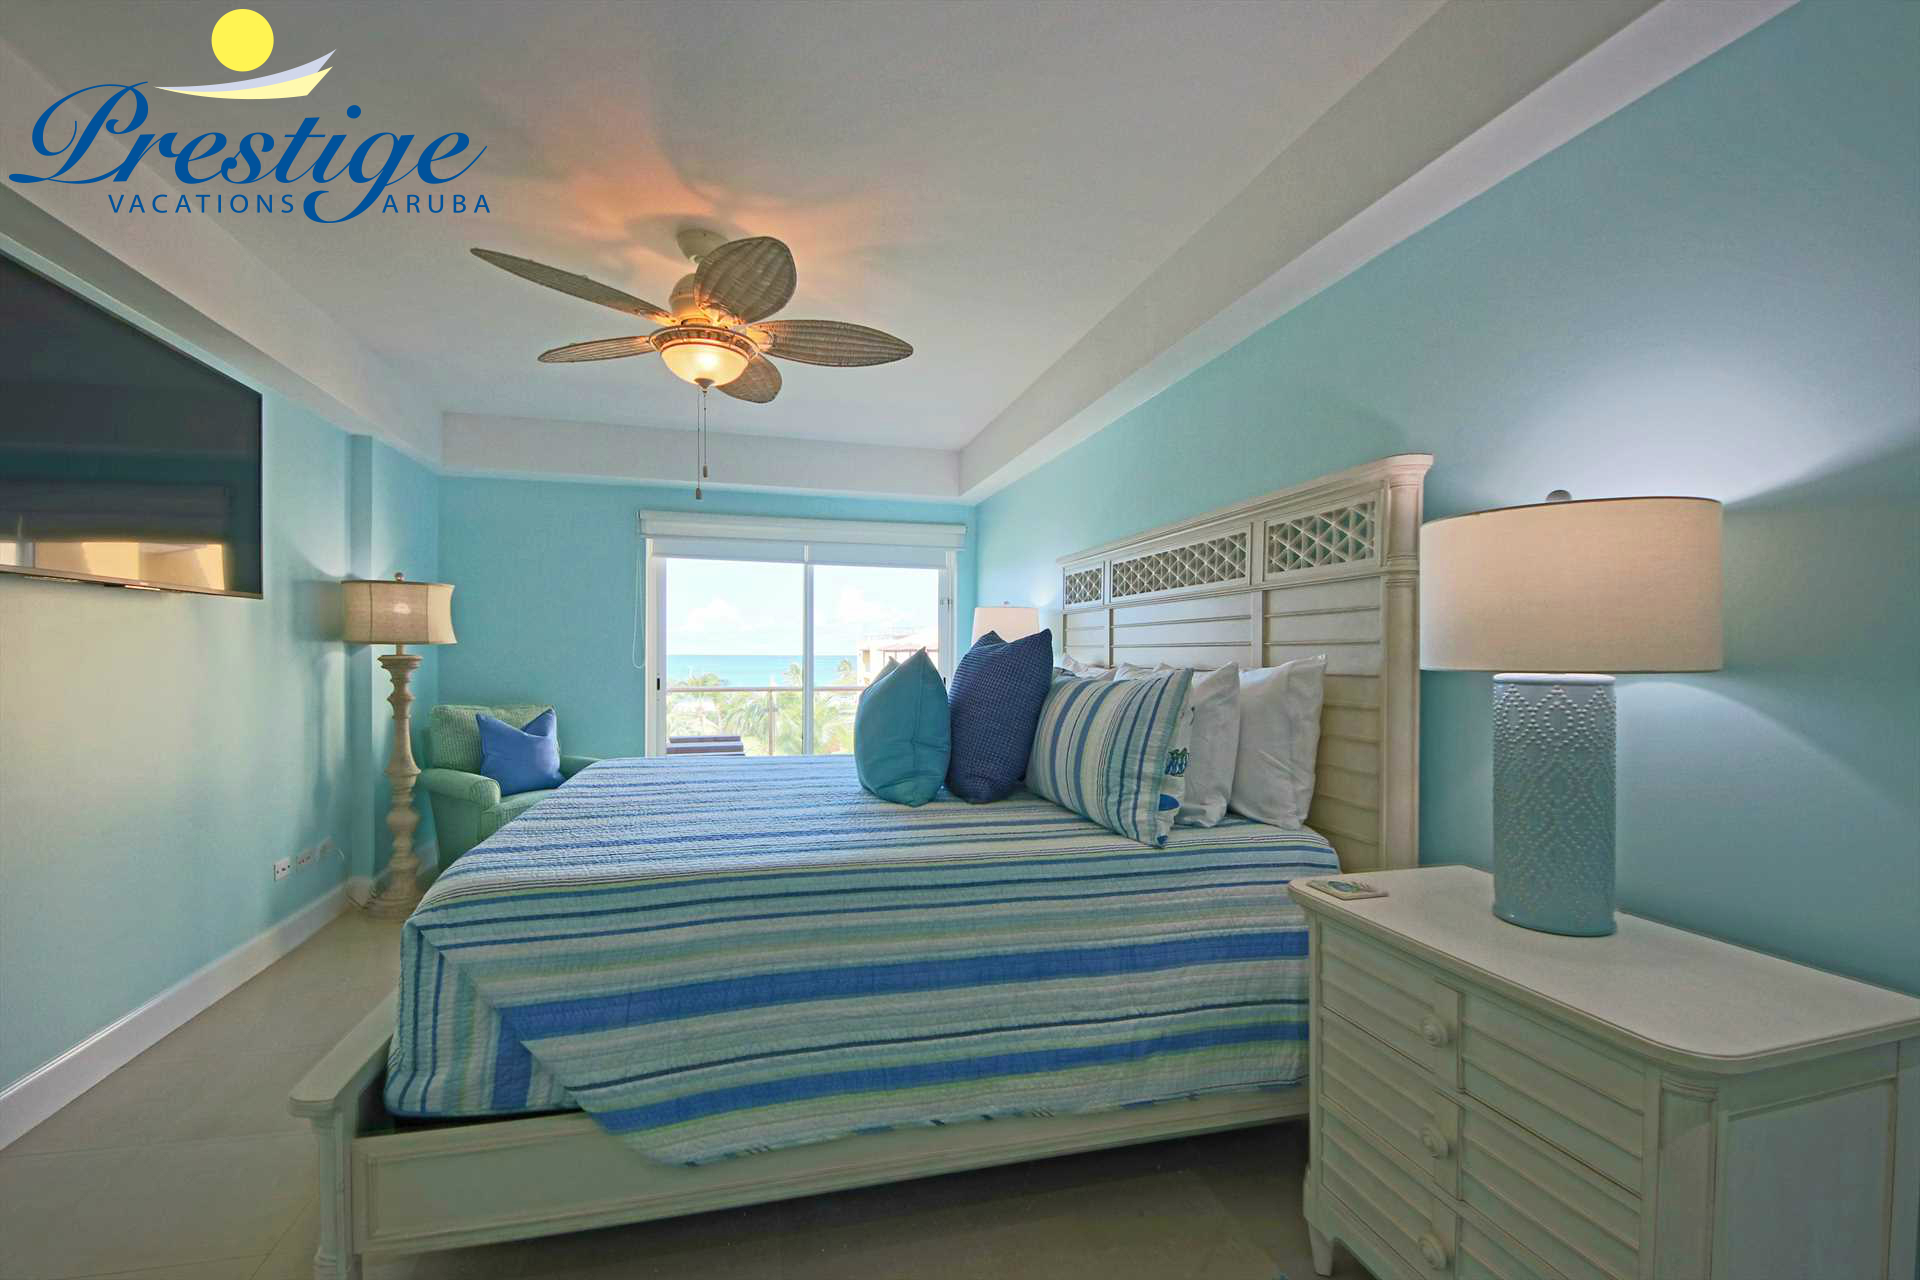 Master bedroom with king-size bed (Tempur Pedic Luxe Breeze mattress) and access to the balcony plus ocean view